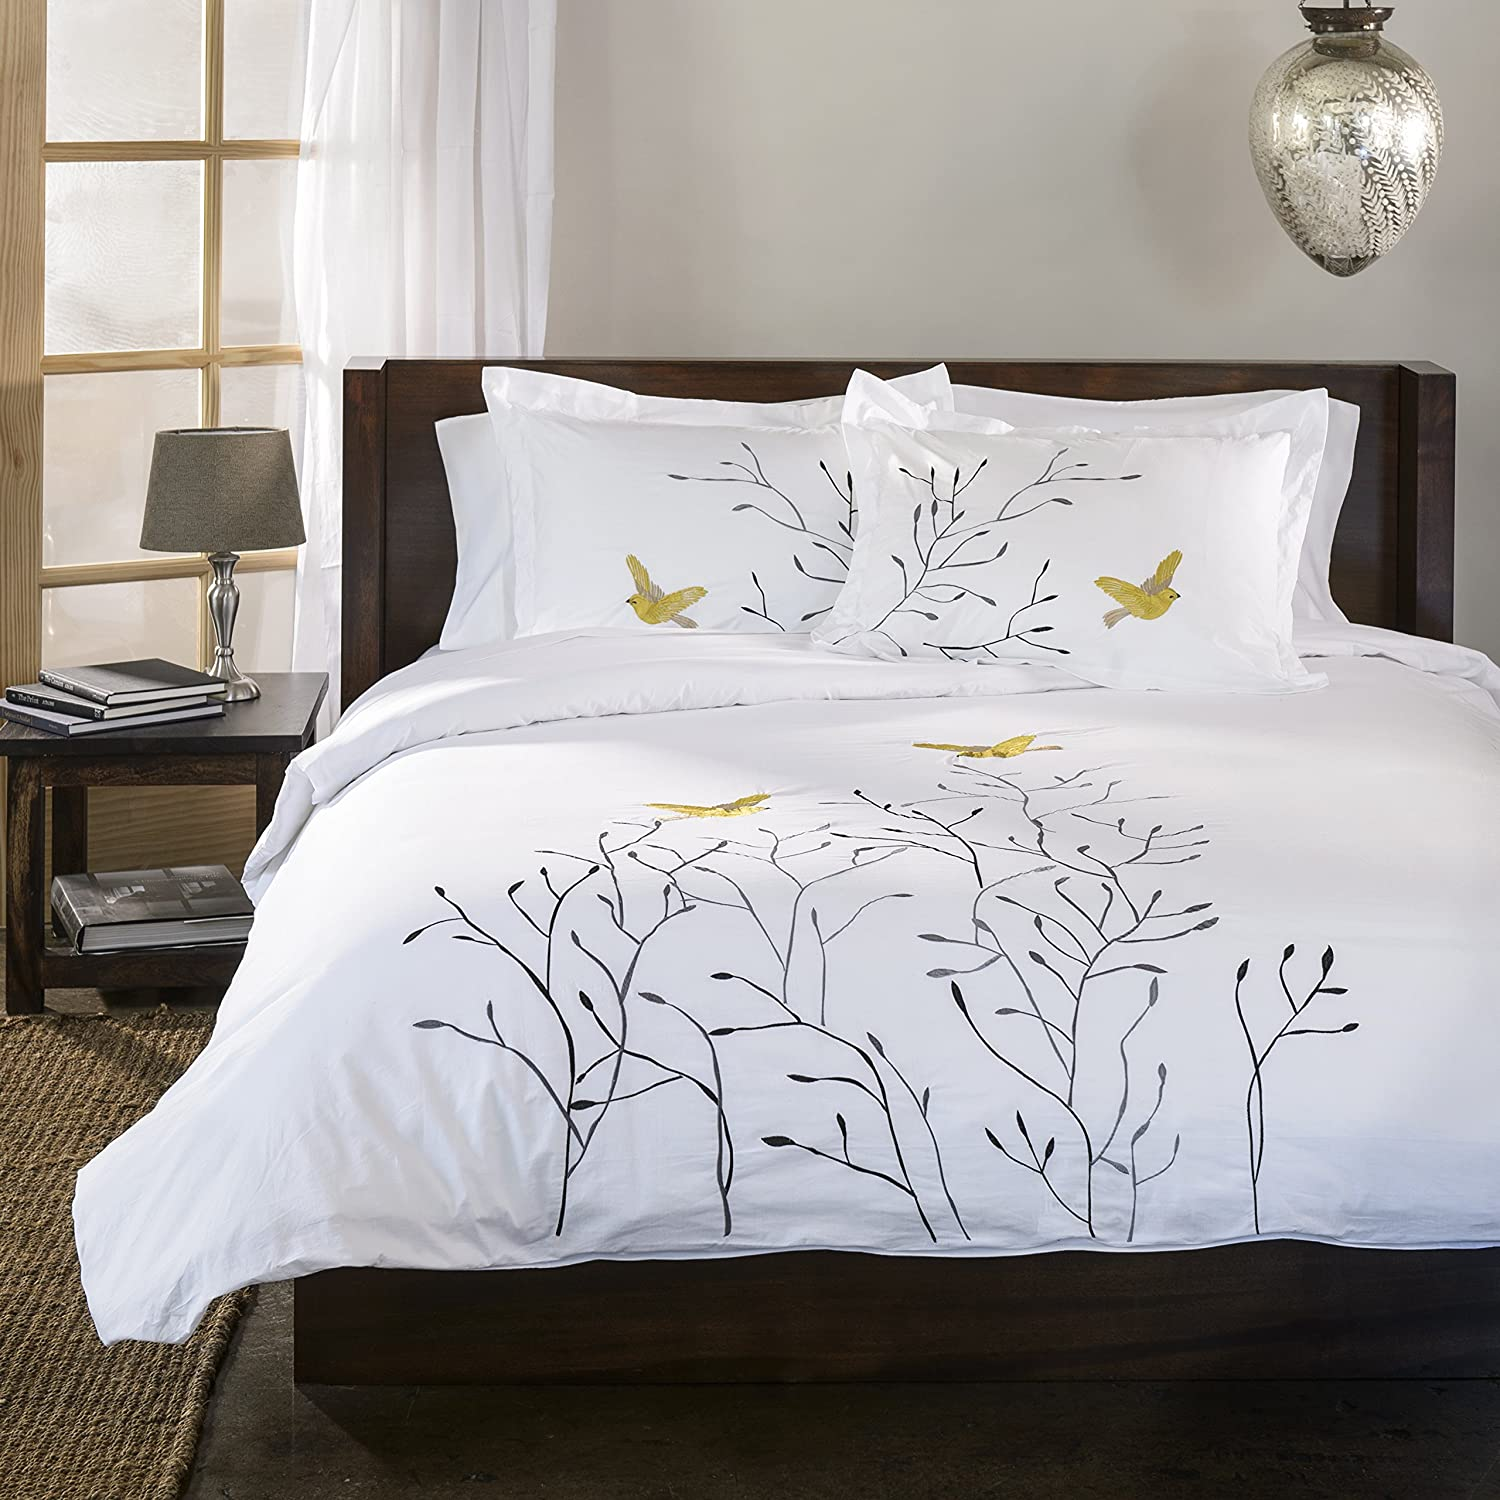 amelia sets duvet textiles cover shop bedroom sheraton set embroidered